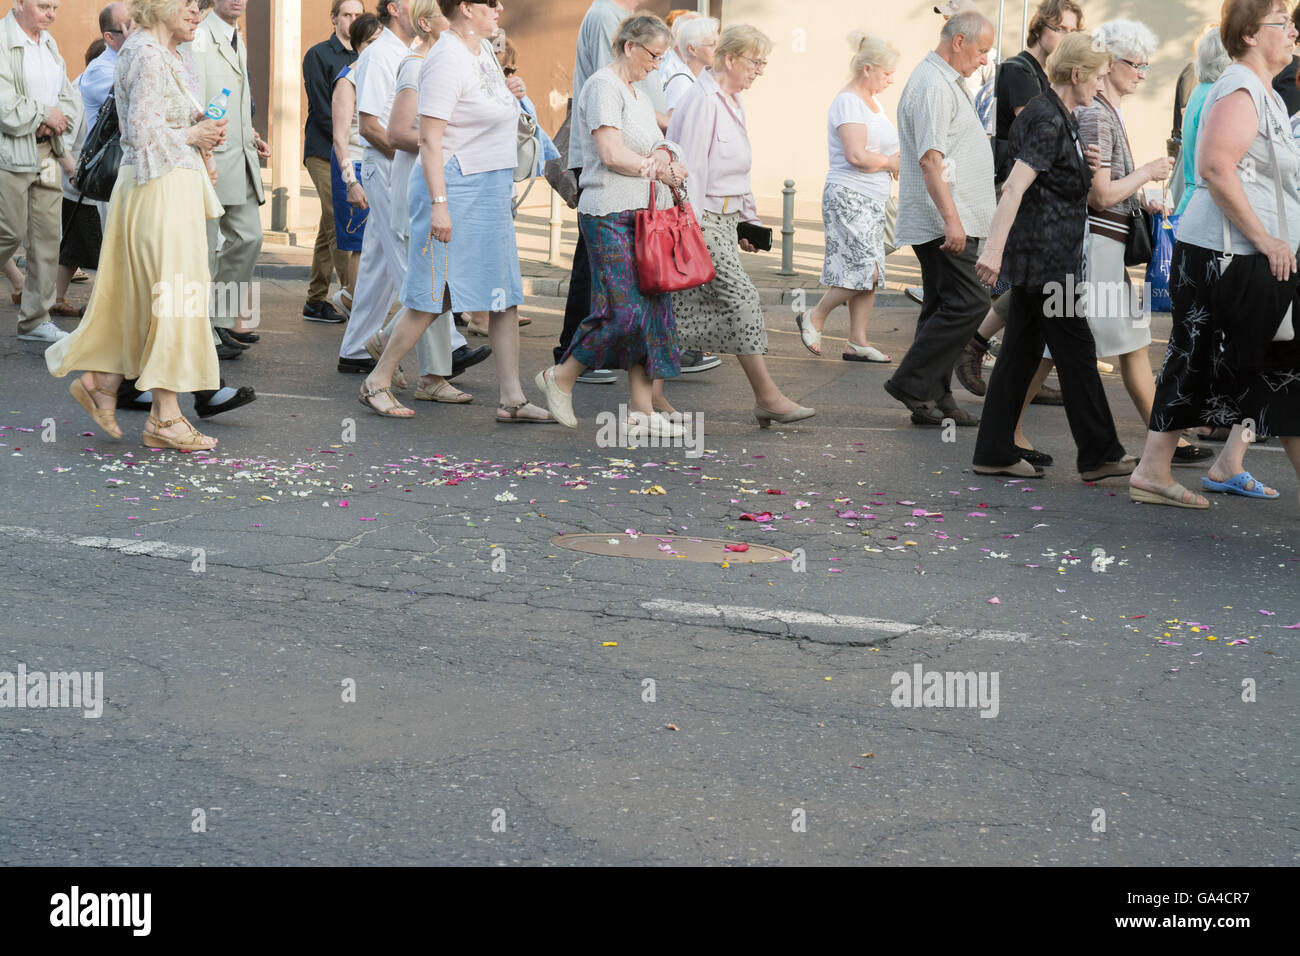 Corpus Christi procession in the street of Gdynia, Poland, Europe - Stock Image